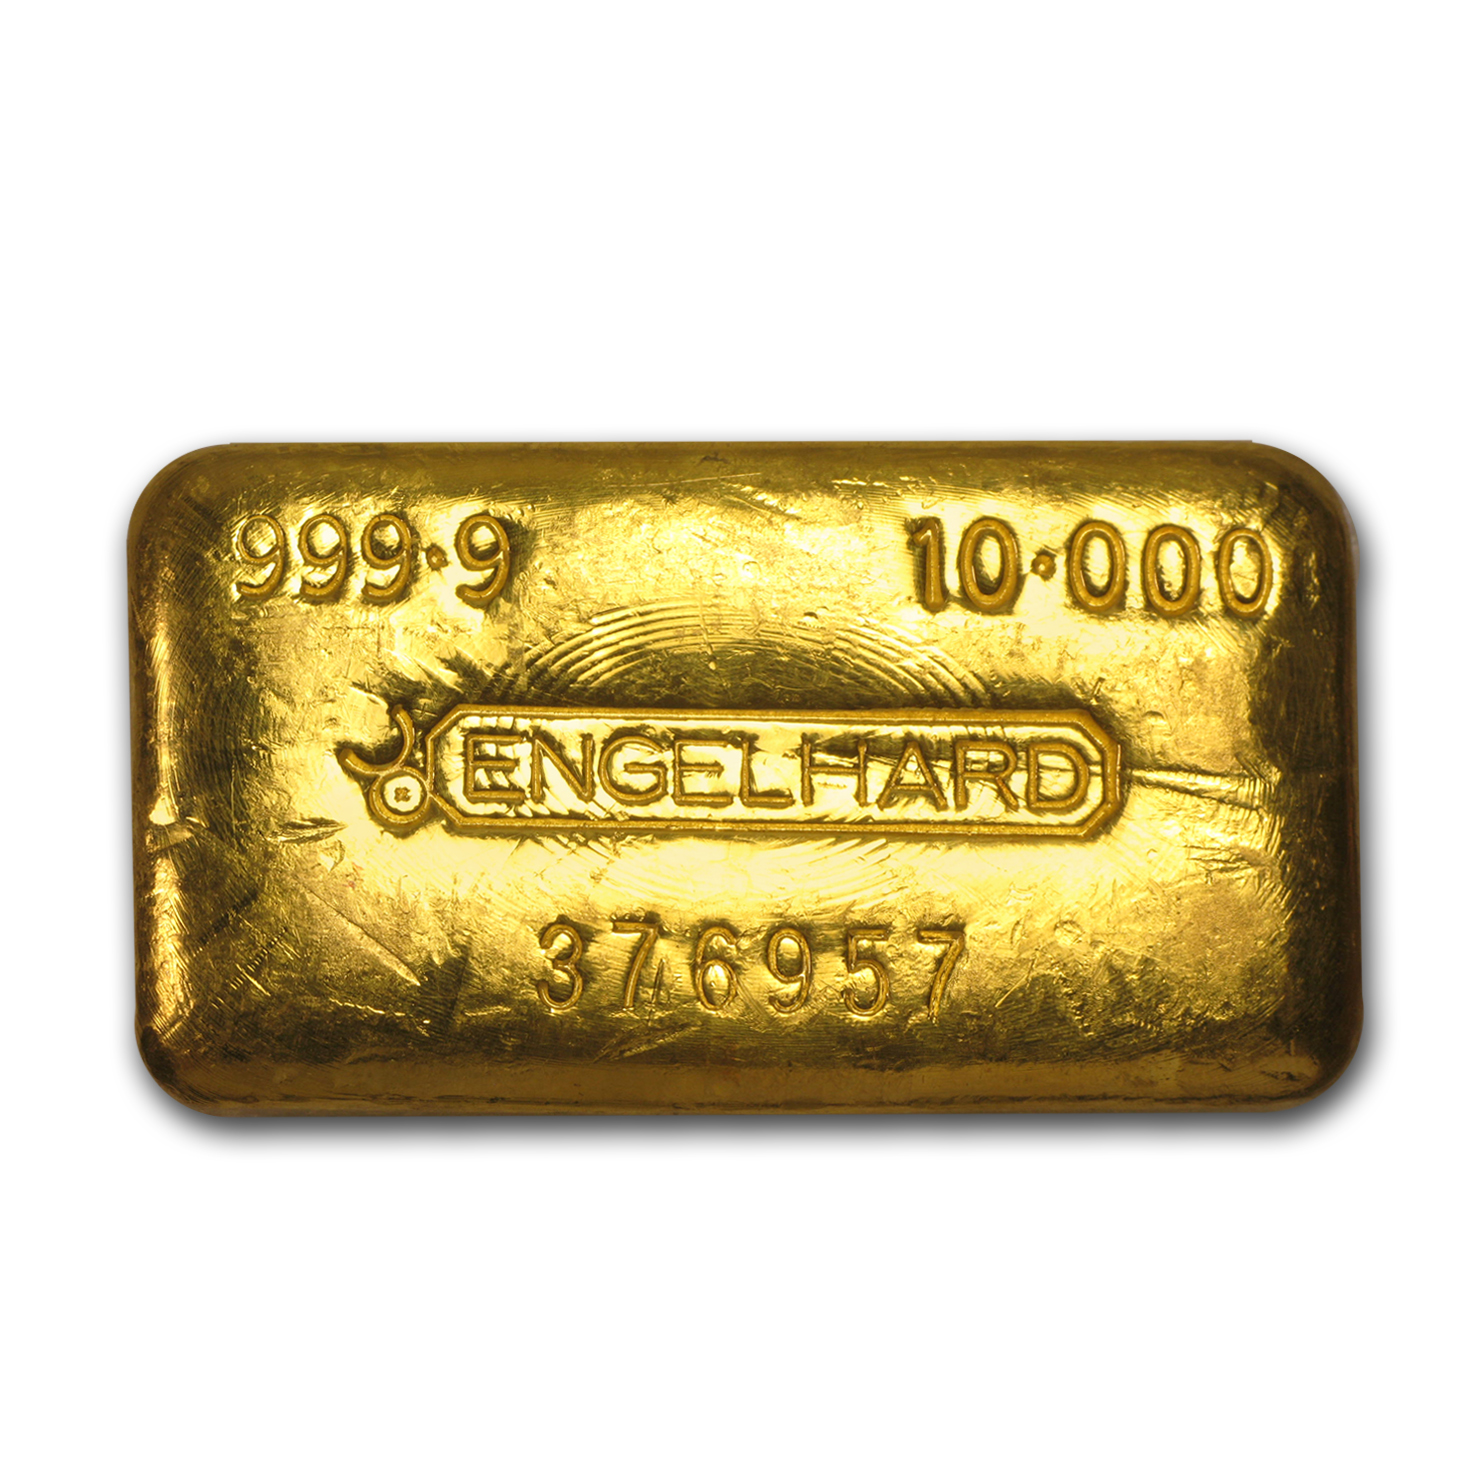 10 oz Gold Bar - Engelhard (Poured/Loaf-Style, Bull Logo)